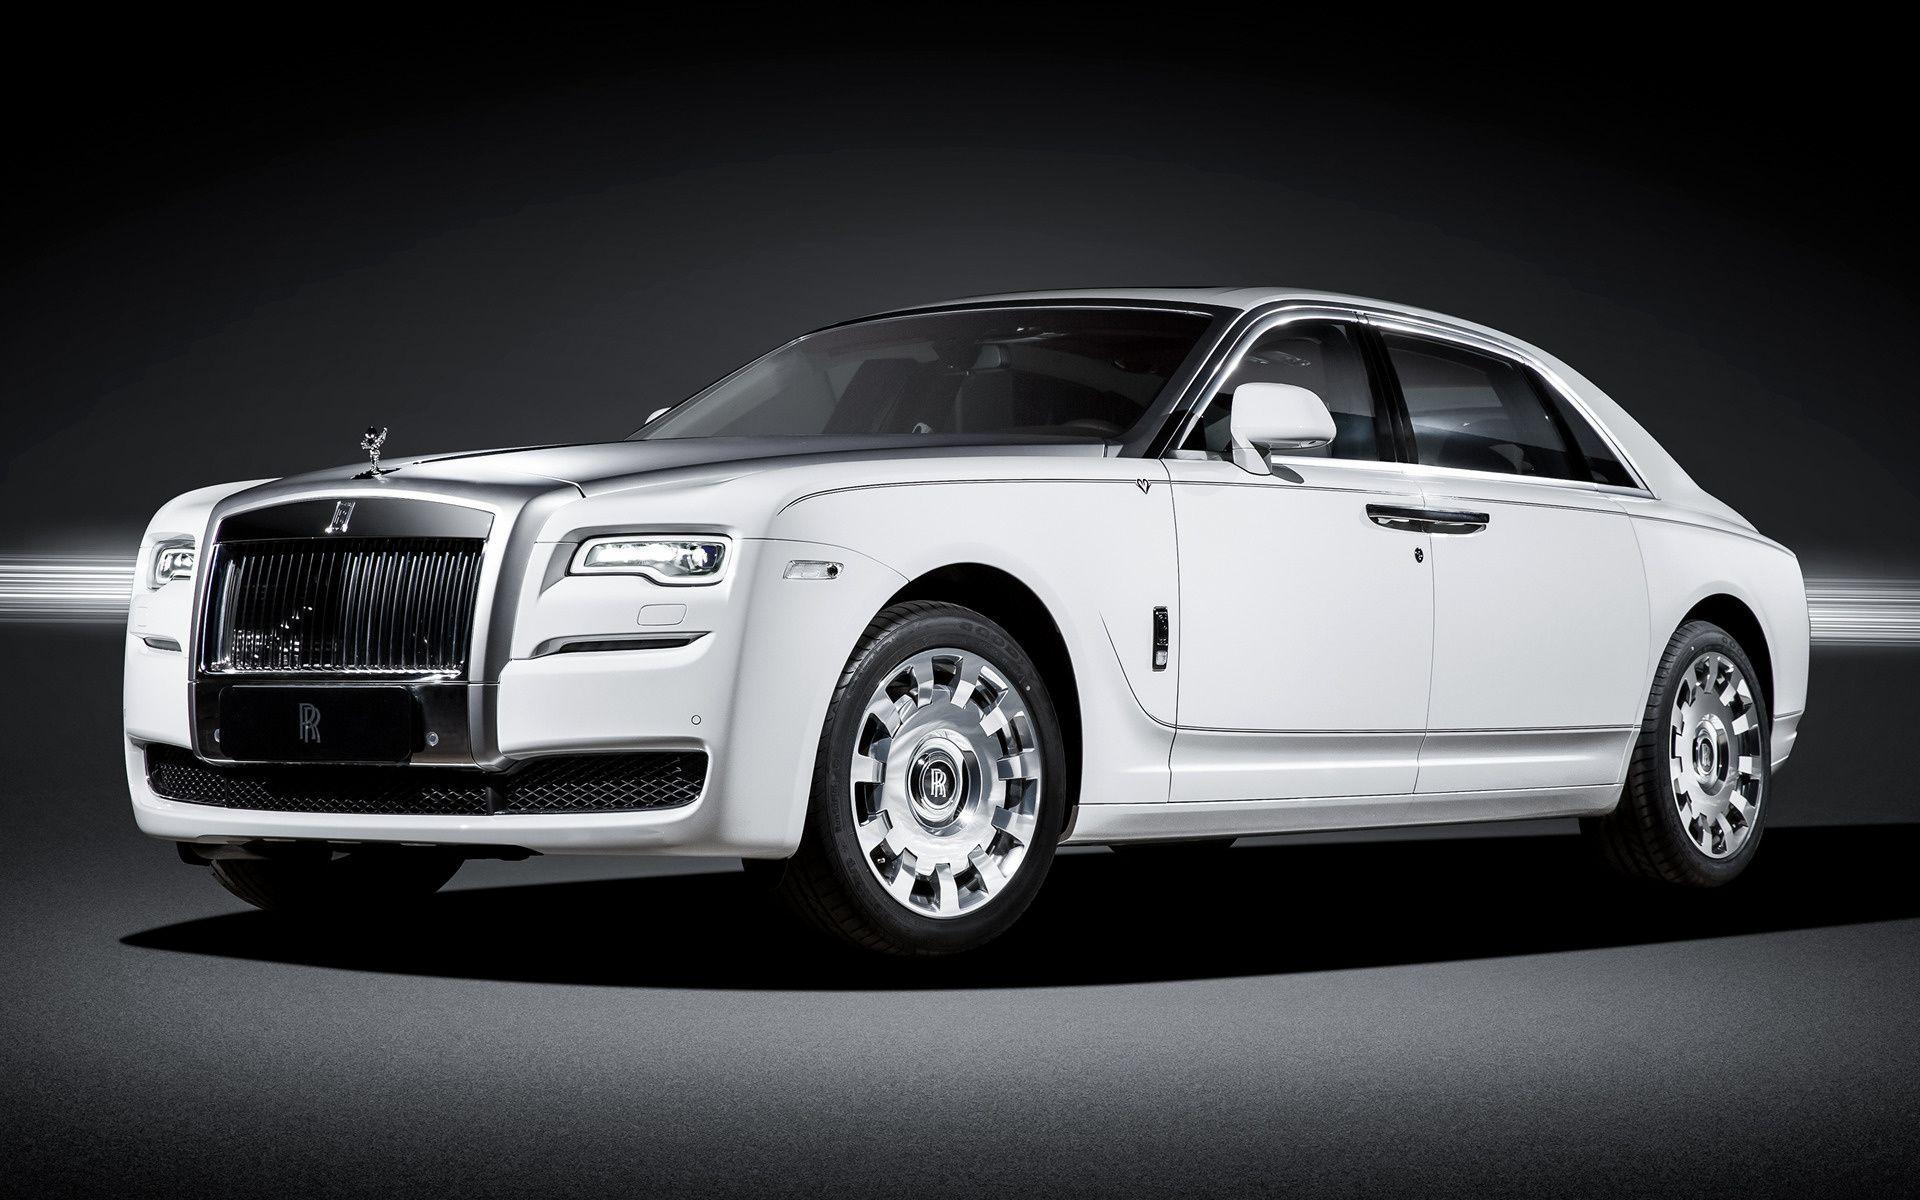 Rolls-Royce Ghost Eternal Love (2016) Wallpapers and HD Images - Car ...